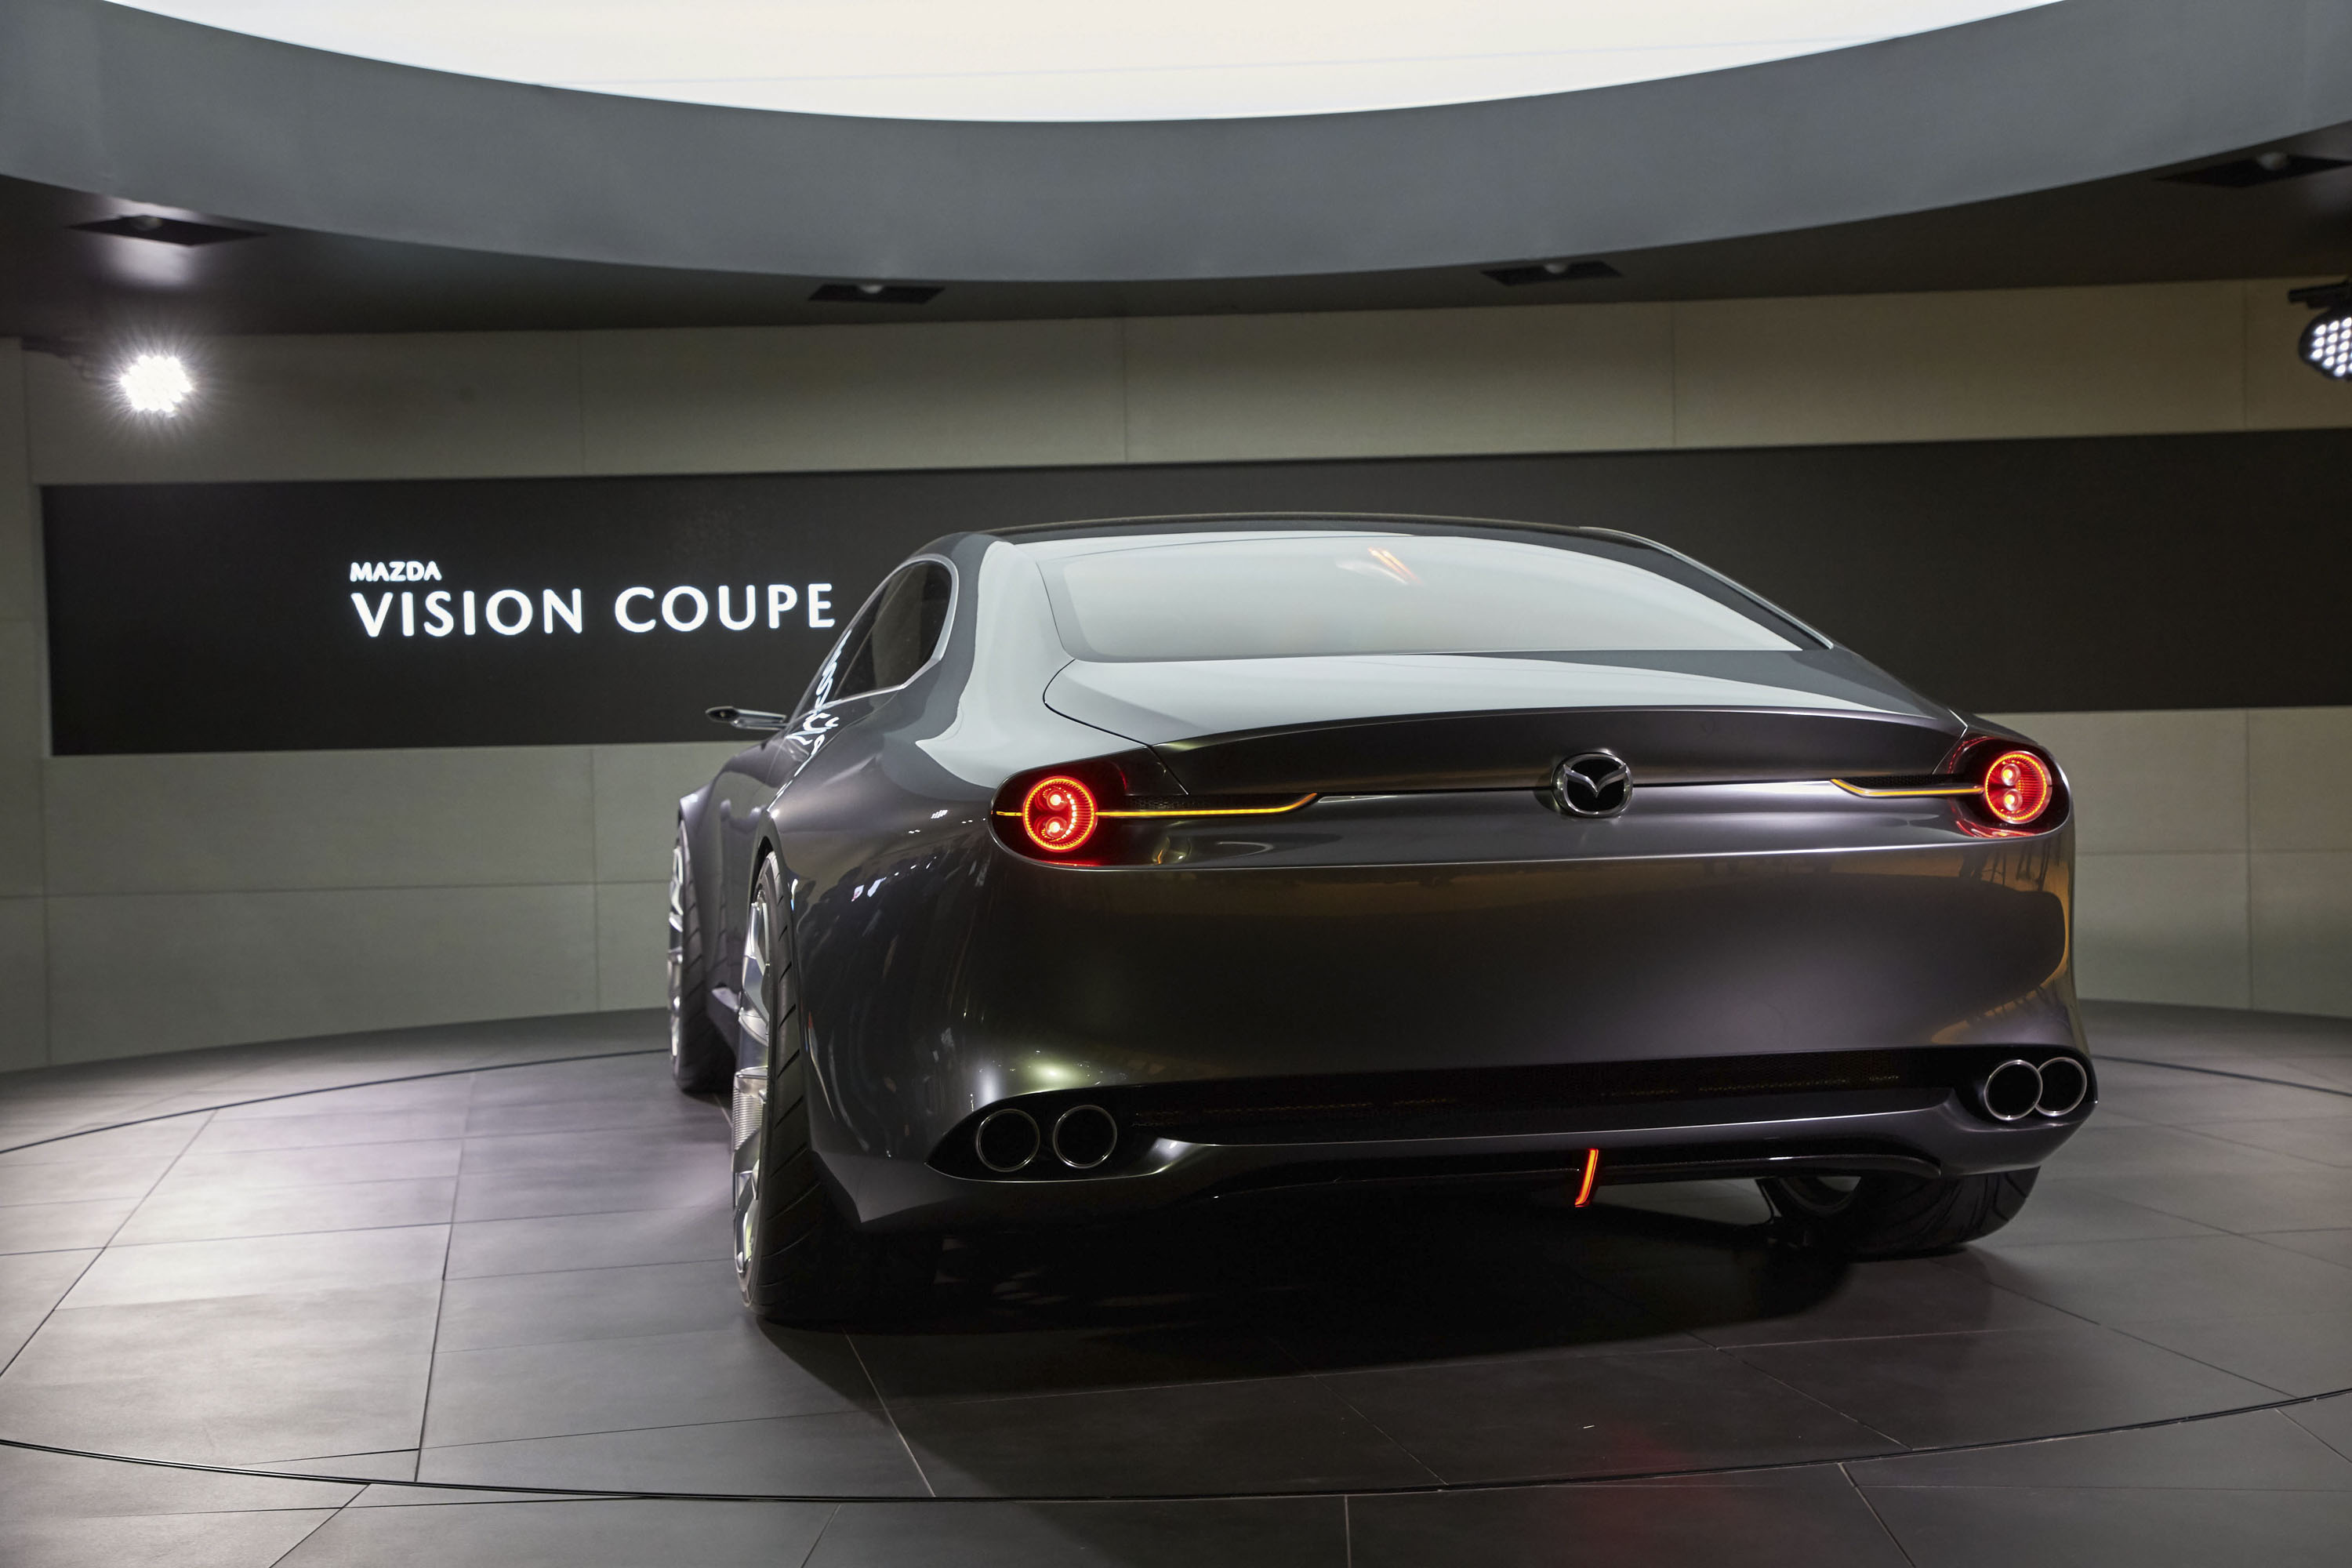 https://pictures.topspeed.com/IMG/jpg/201710/2017-mazda-vision-coupe-c-18.jpg